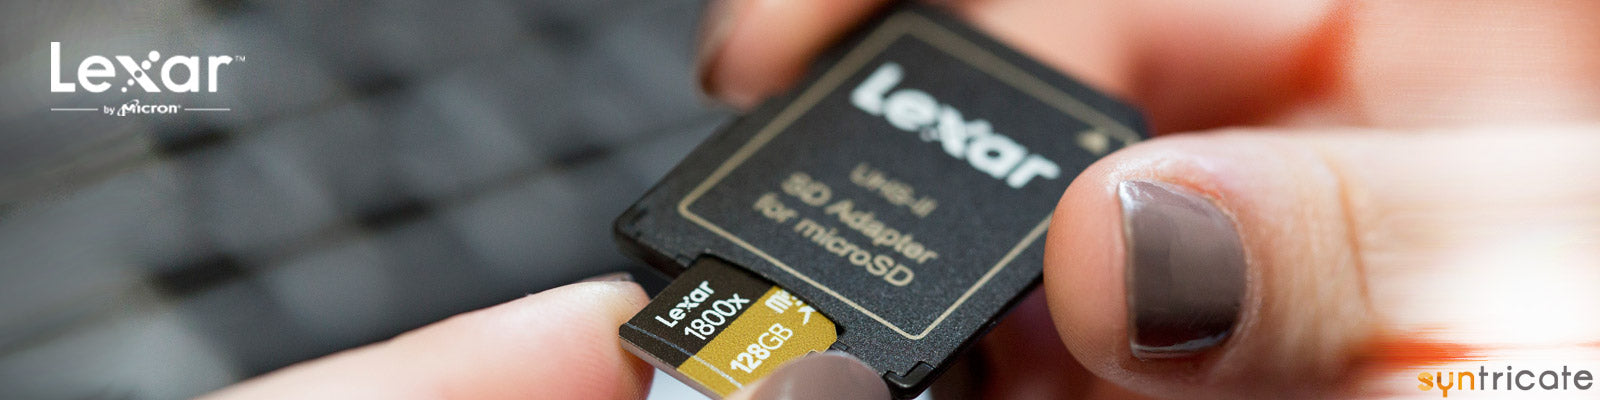 Lexar Memory Card, Jump Drive and card reader Australia